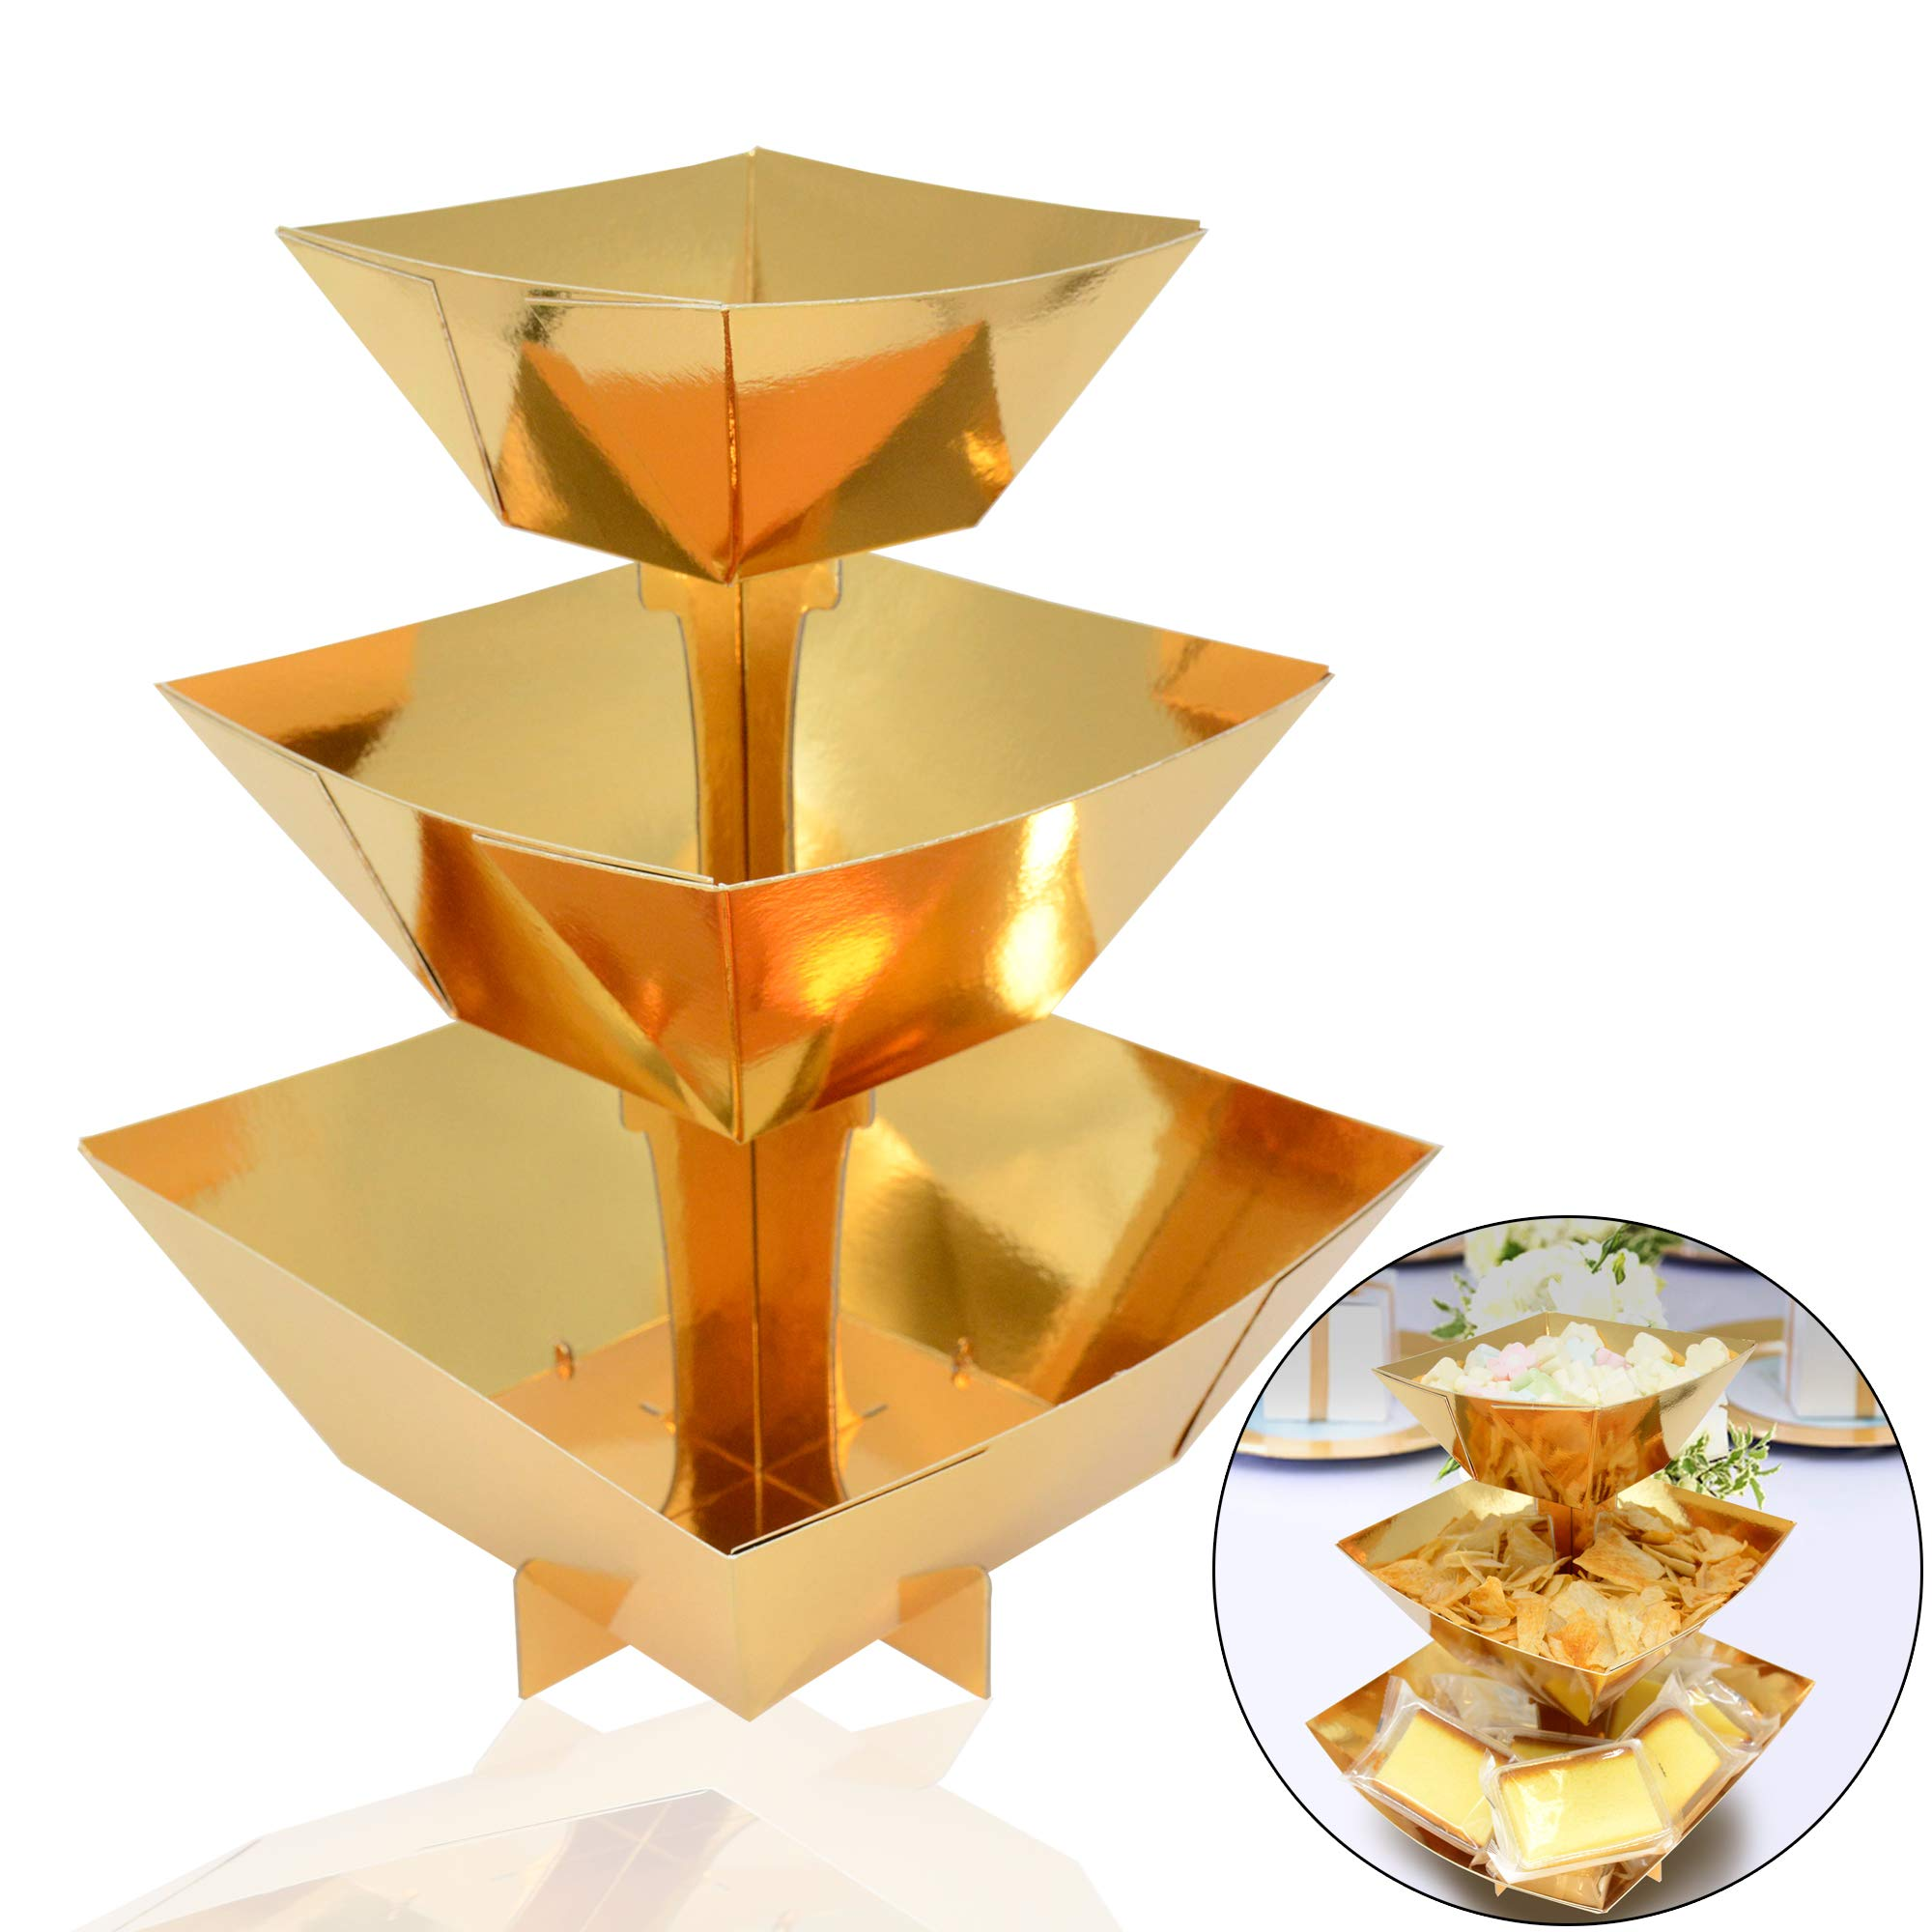 Cardboard Gold Dessert Display Dessert Stand Candy Snack Cupcake Stand Party Supplies Cake Stand Bowl Stand, Tower Display for Birthday 30th 40th 50th 70th Wedding Anniversary Party Supplies